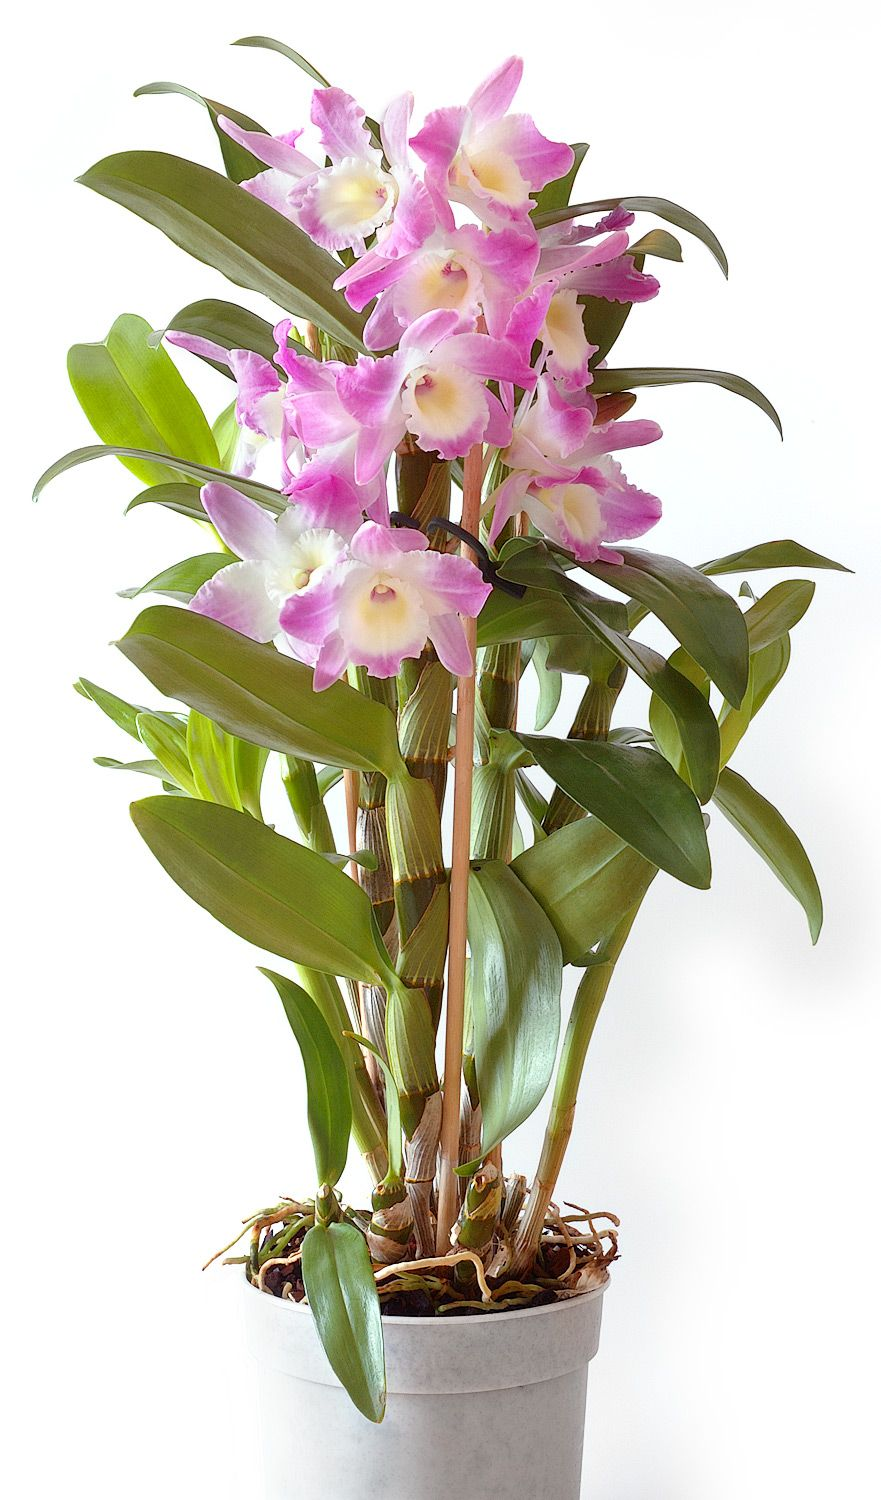 How To Care For Orchid Plants Dendrobium Orchids Care Dendrobium Nobile Types Of Orchids